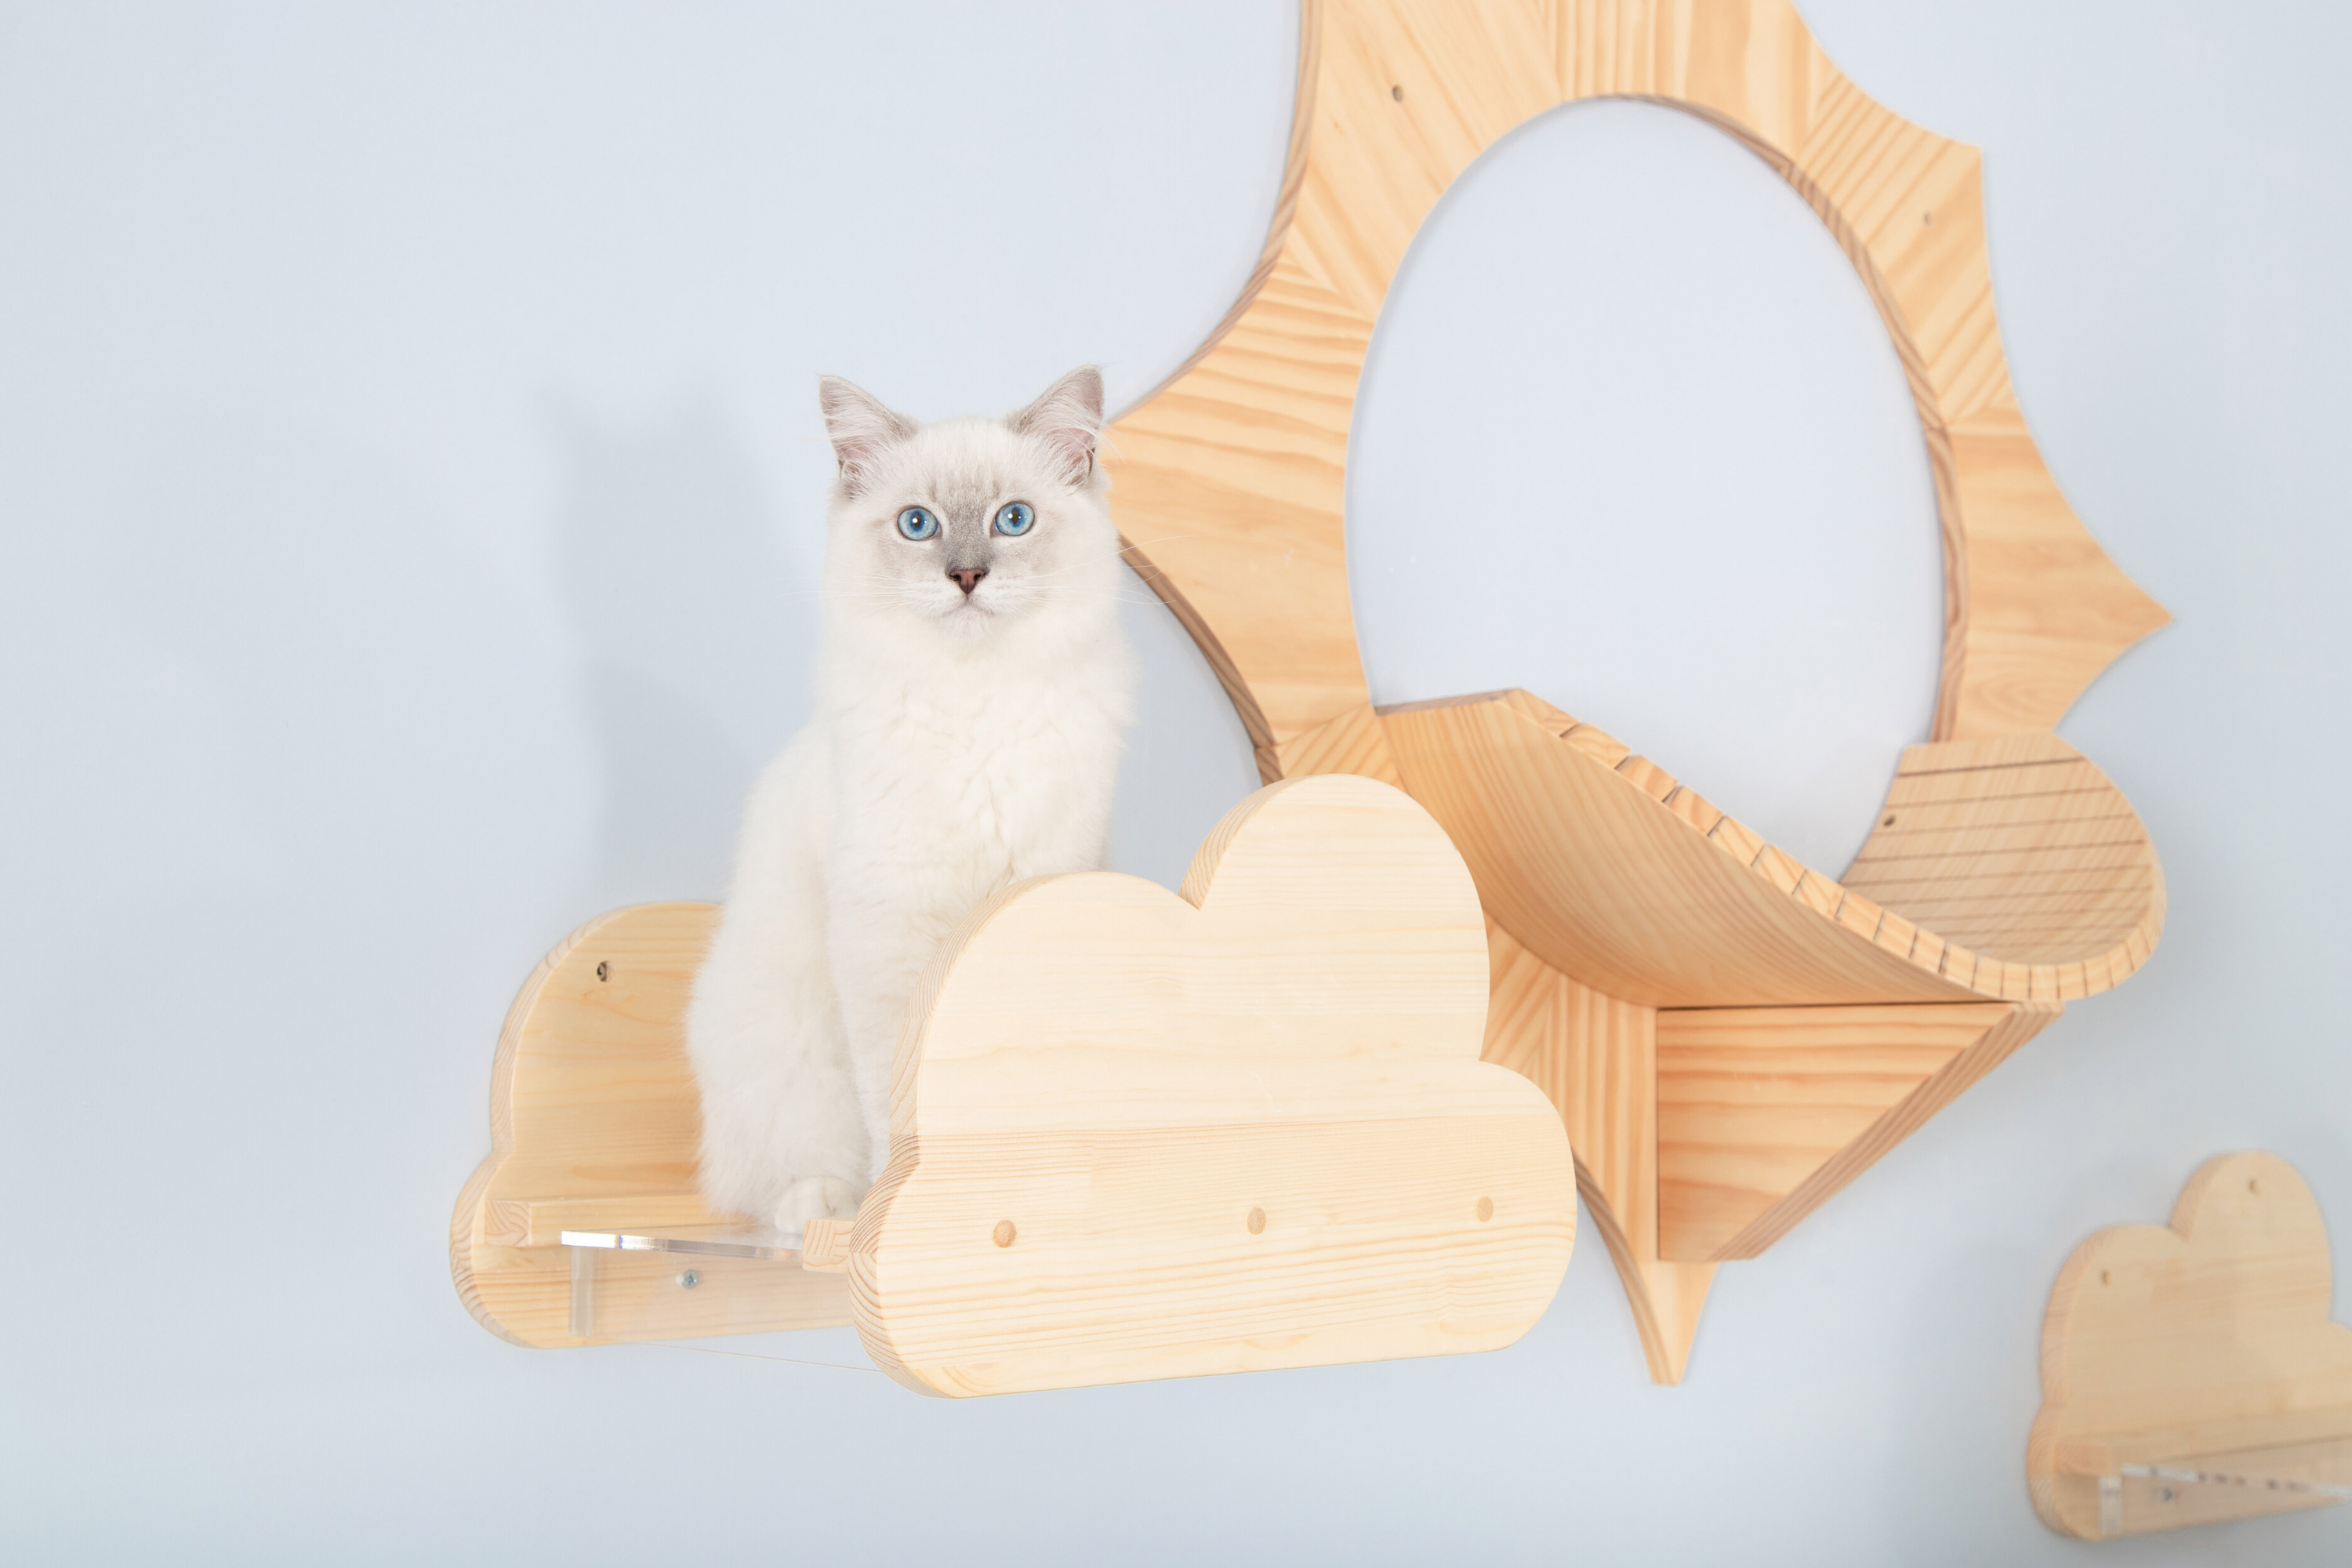 a white ragdoll cat stands on the wall-mounted cat shelf which is a cloud shape.